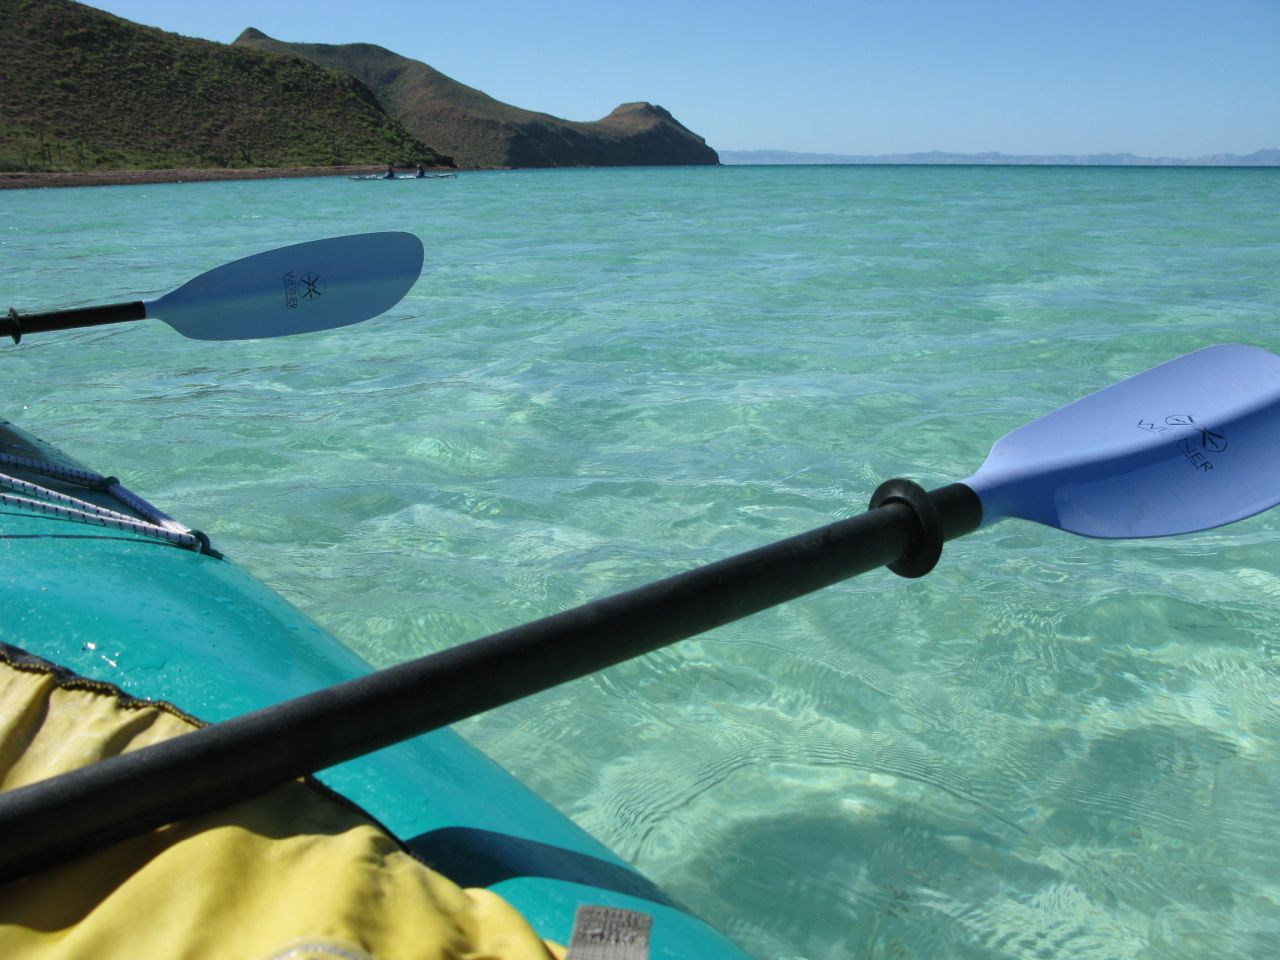 Sea kayaking at La Partida, where the sea turtles feed, Isla Espiritu Santo